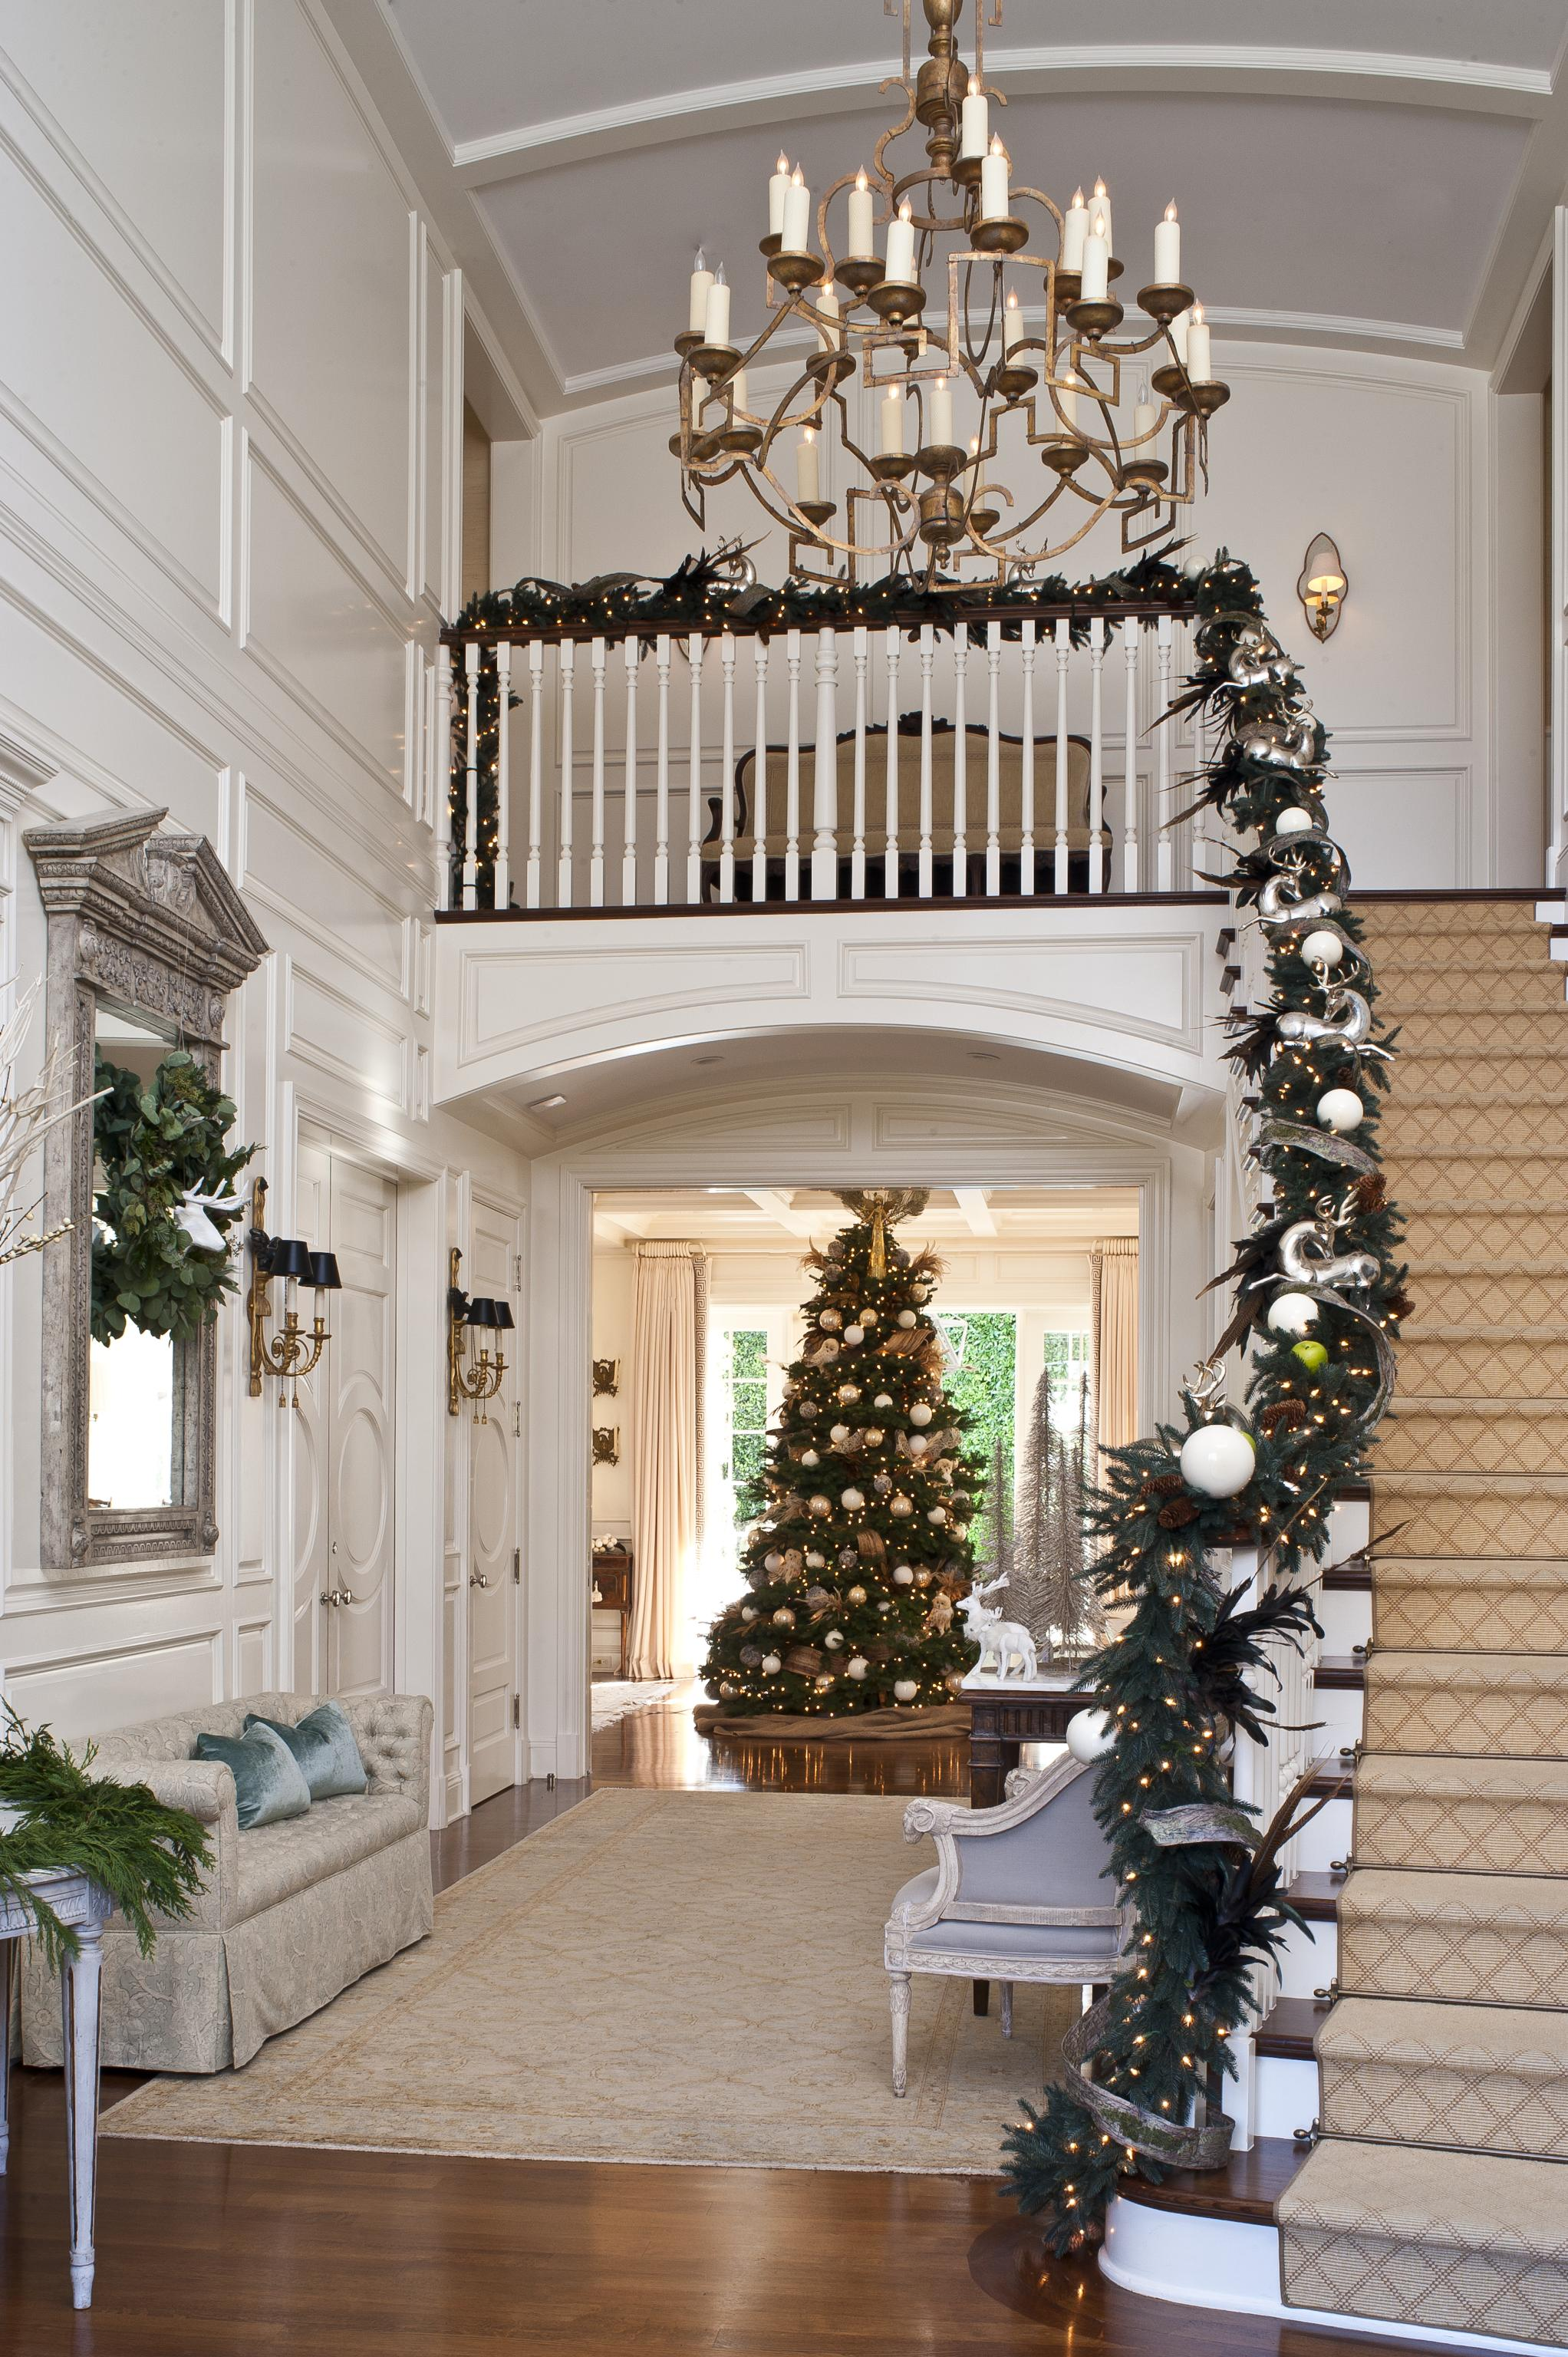 source - Banister Christmas Garland Decor